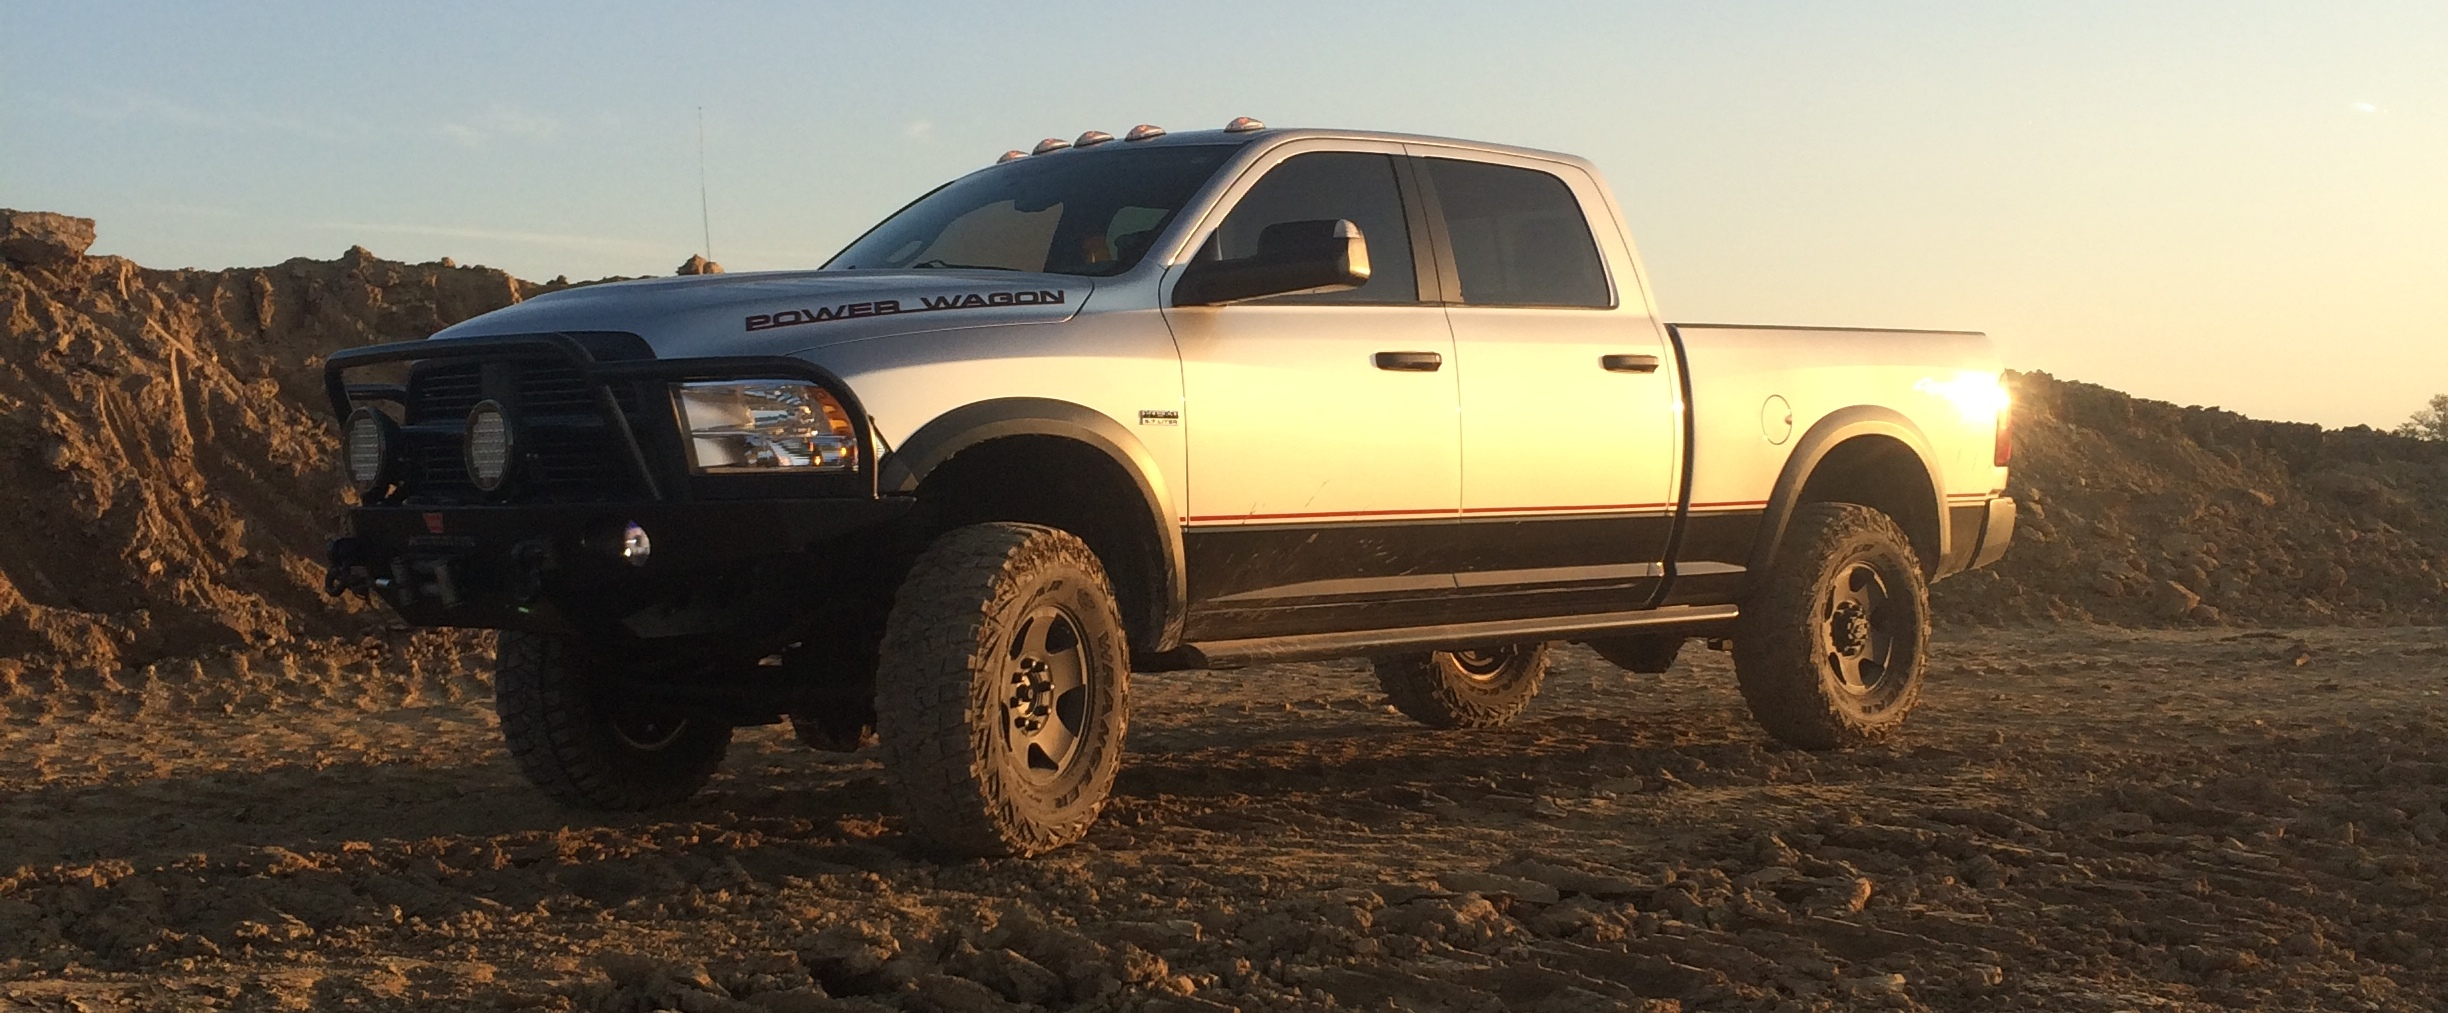 Power Wagon - Sunset.jpg